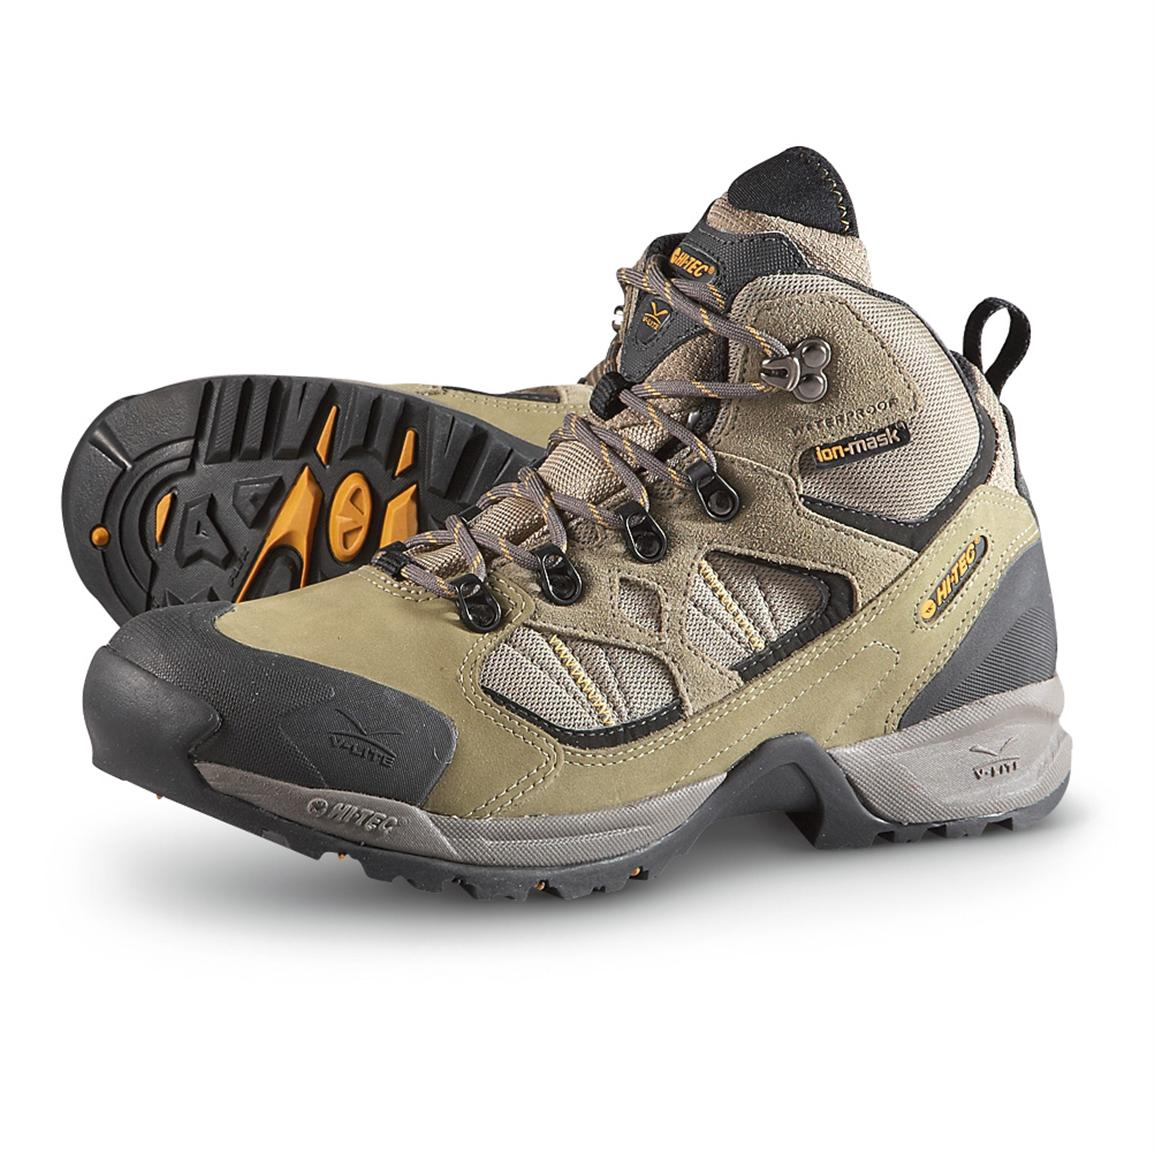 Men's Hi-Tec® V-lite™ Mt. Nevis II Waterproof Hiking Boots, Olive / Taupe